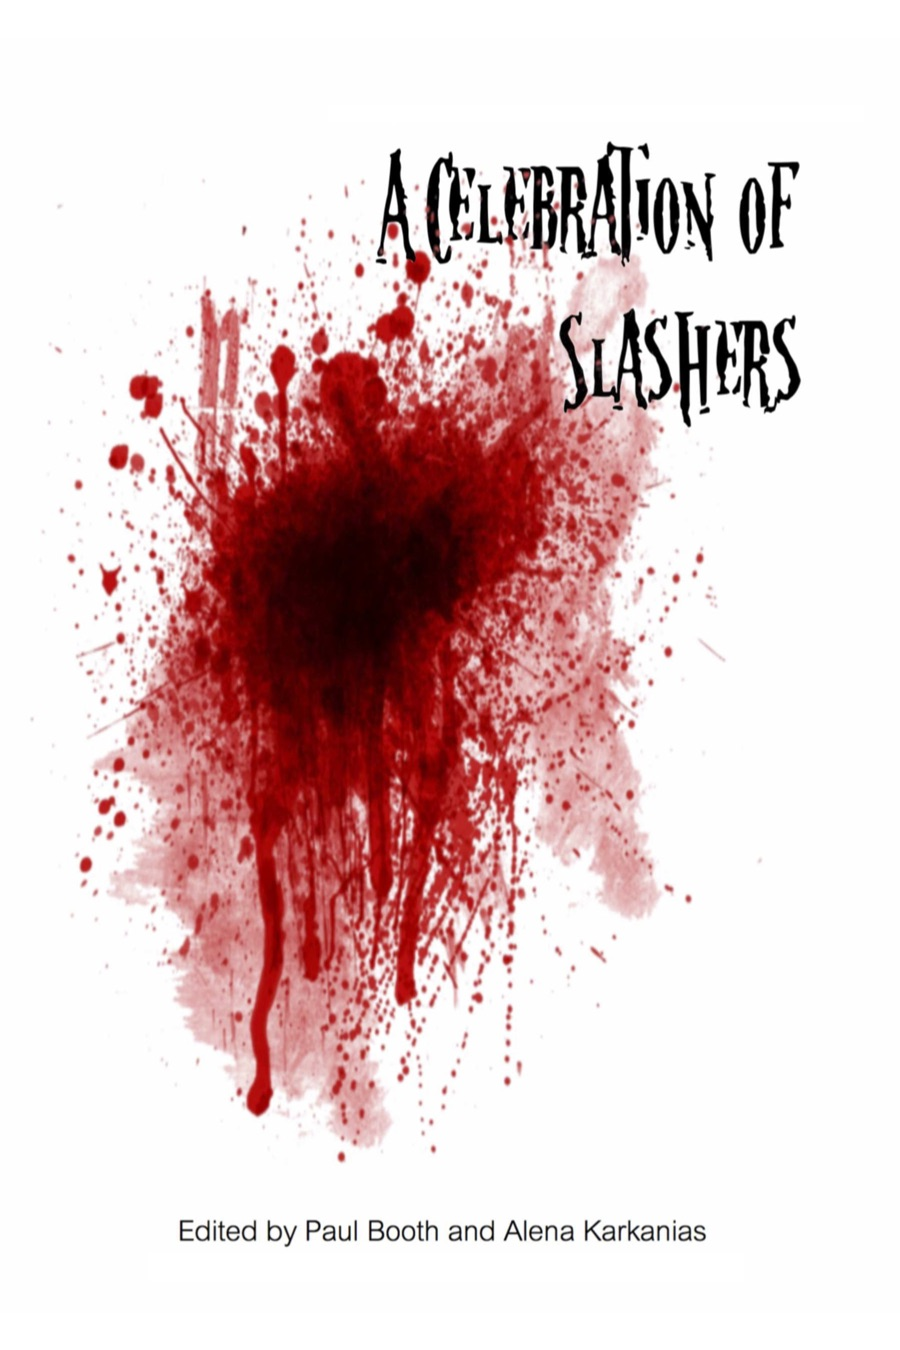 A Celebration of Slashers - In celebration of the sixth annual DePaul Pop Culture Conference, this book collects essays, thoughts, and contributions from participants at the 2018 Celebration of Slashers. With a contribution from Keynote speaker Rachel Talalay!Proceeds from the sale of this volume benefit Global Girl Media!